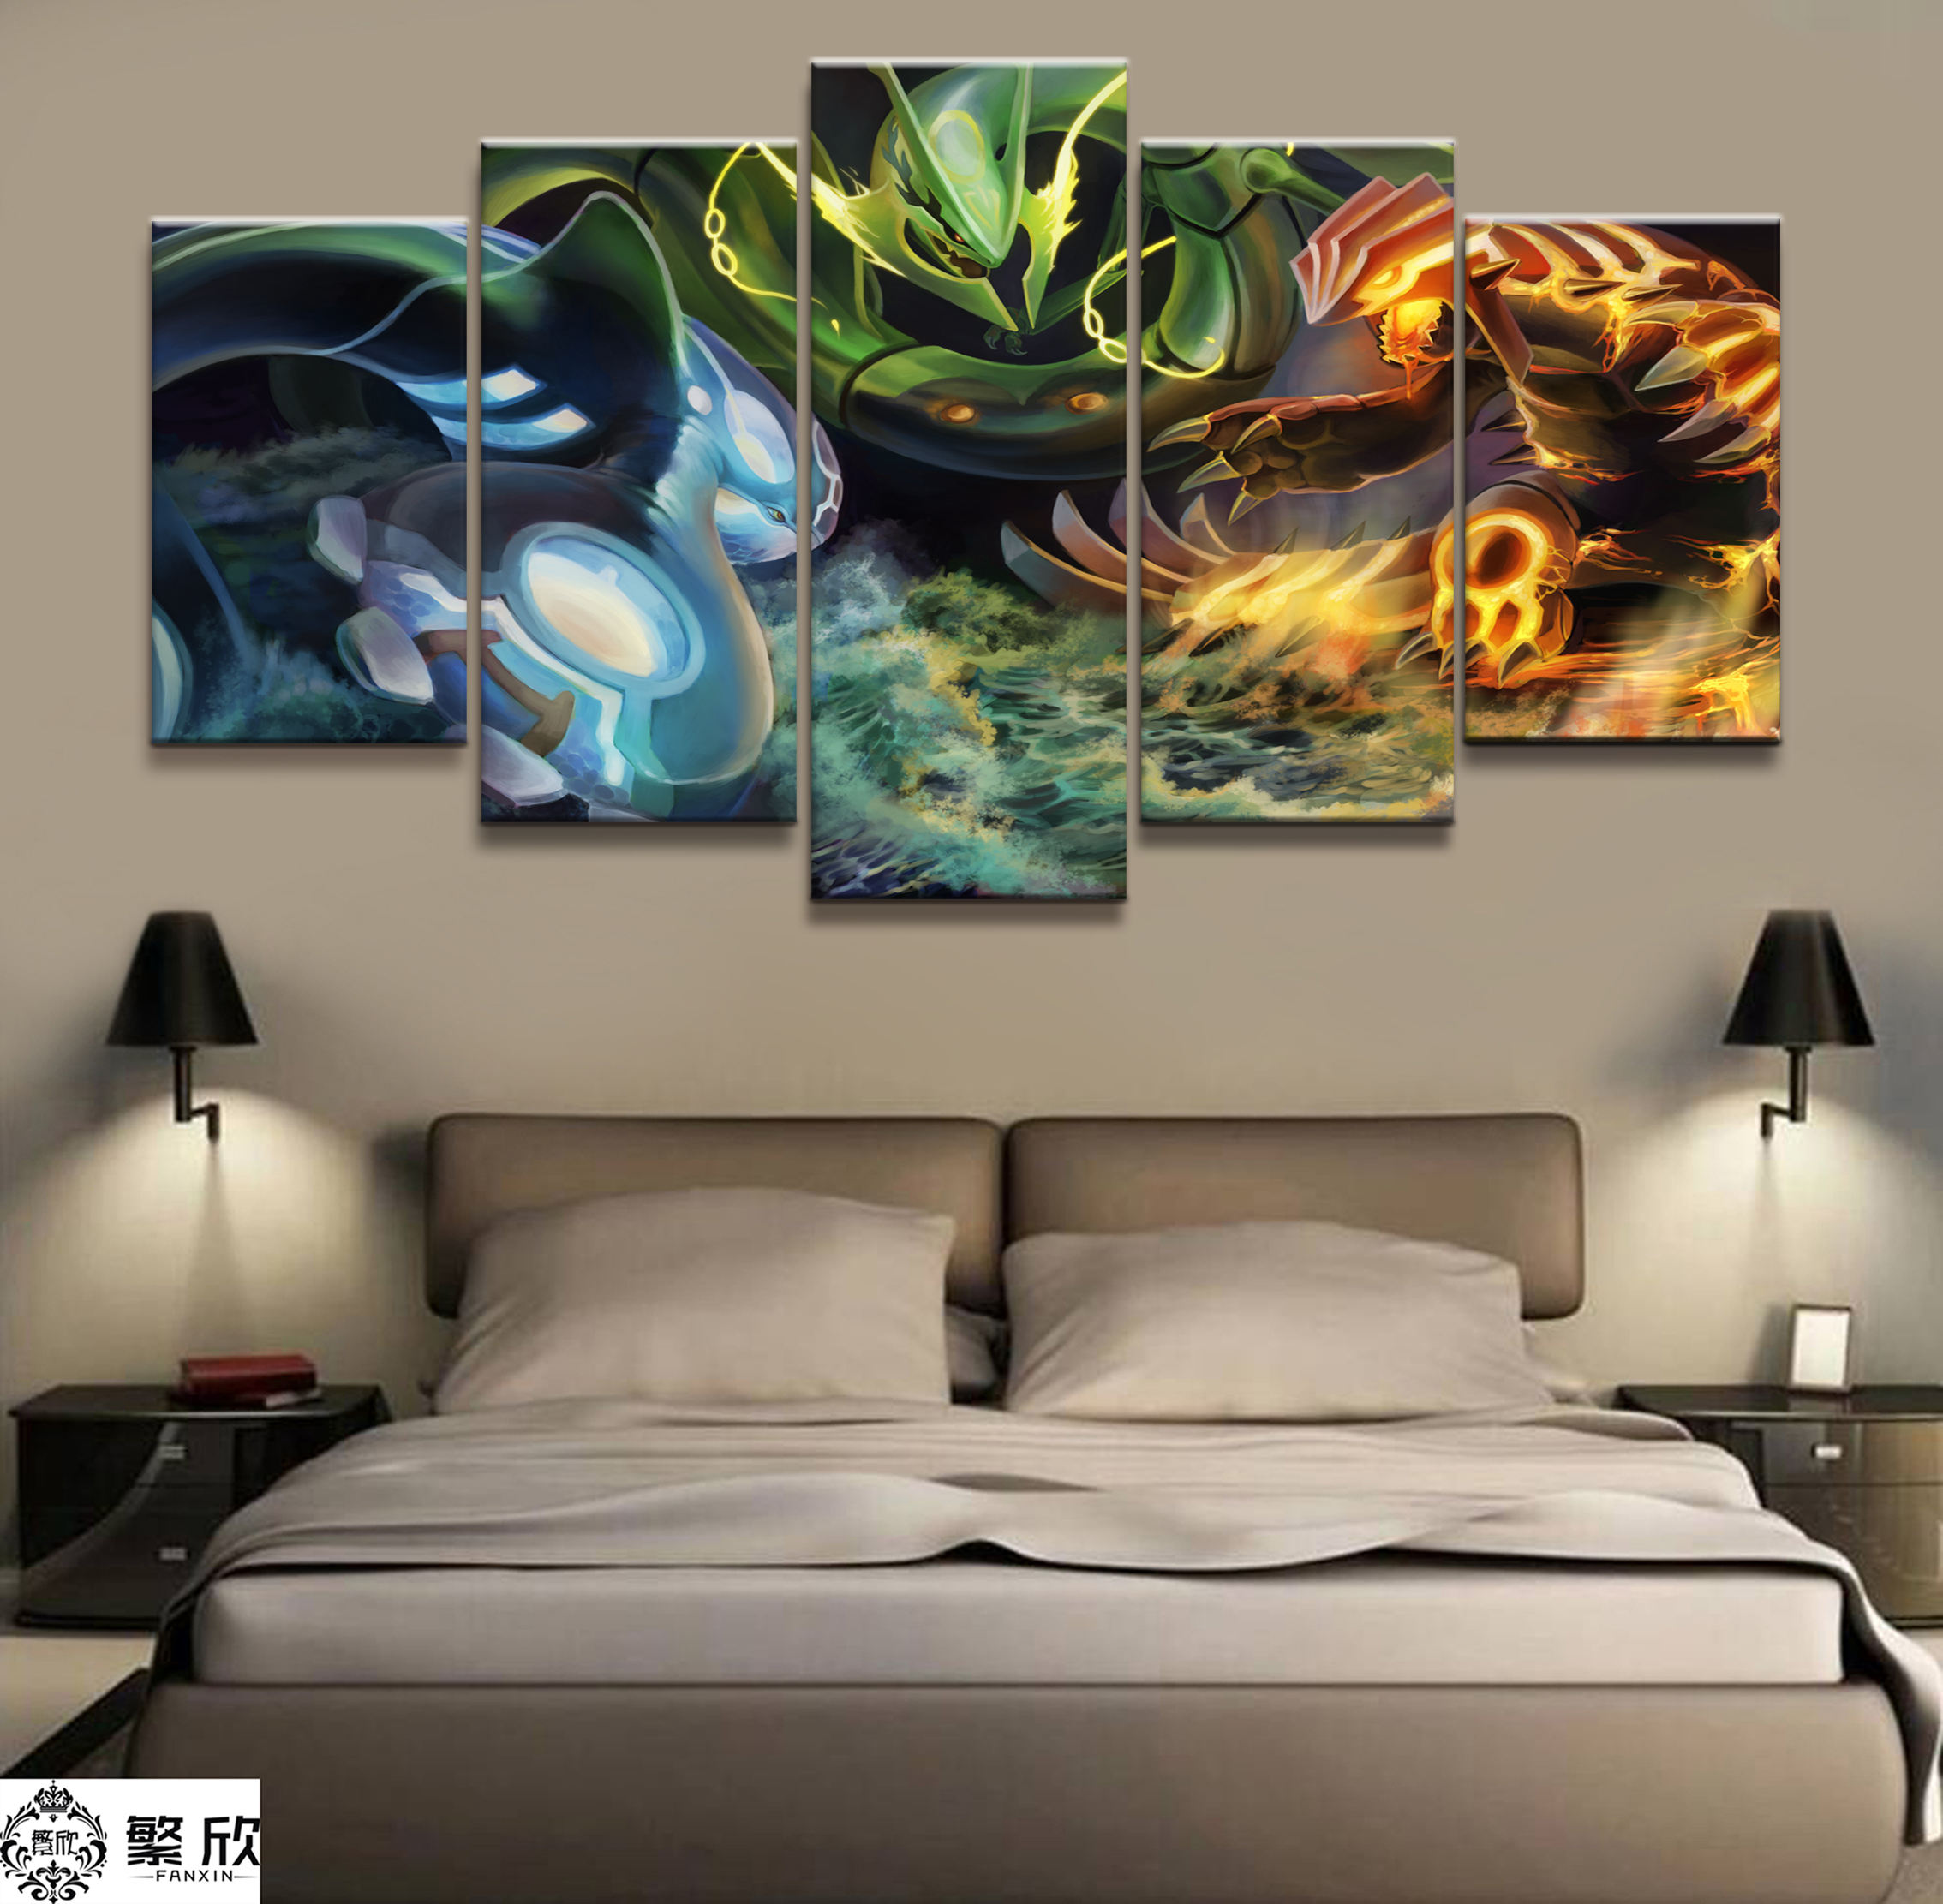 5 Pieces Pokemon Comic Poster Modern Wall Art Decorative Modular Framework Picture Canvas HD Printed One Set Painting